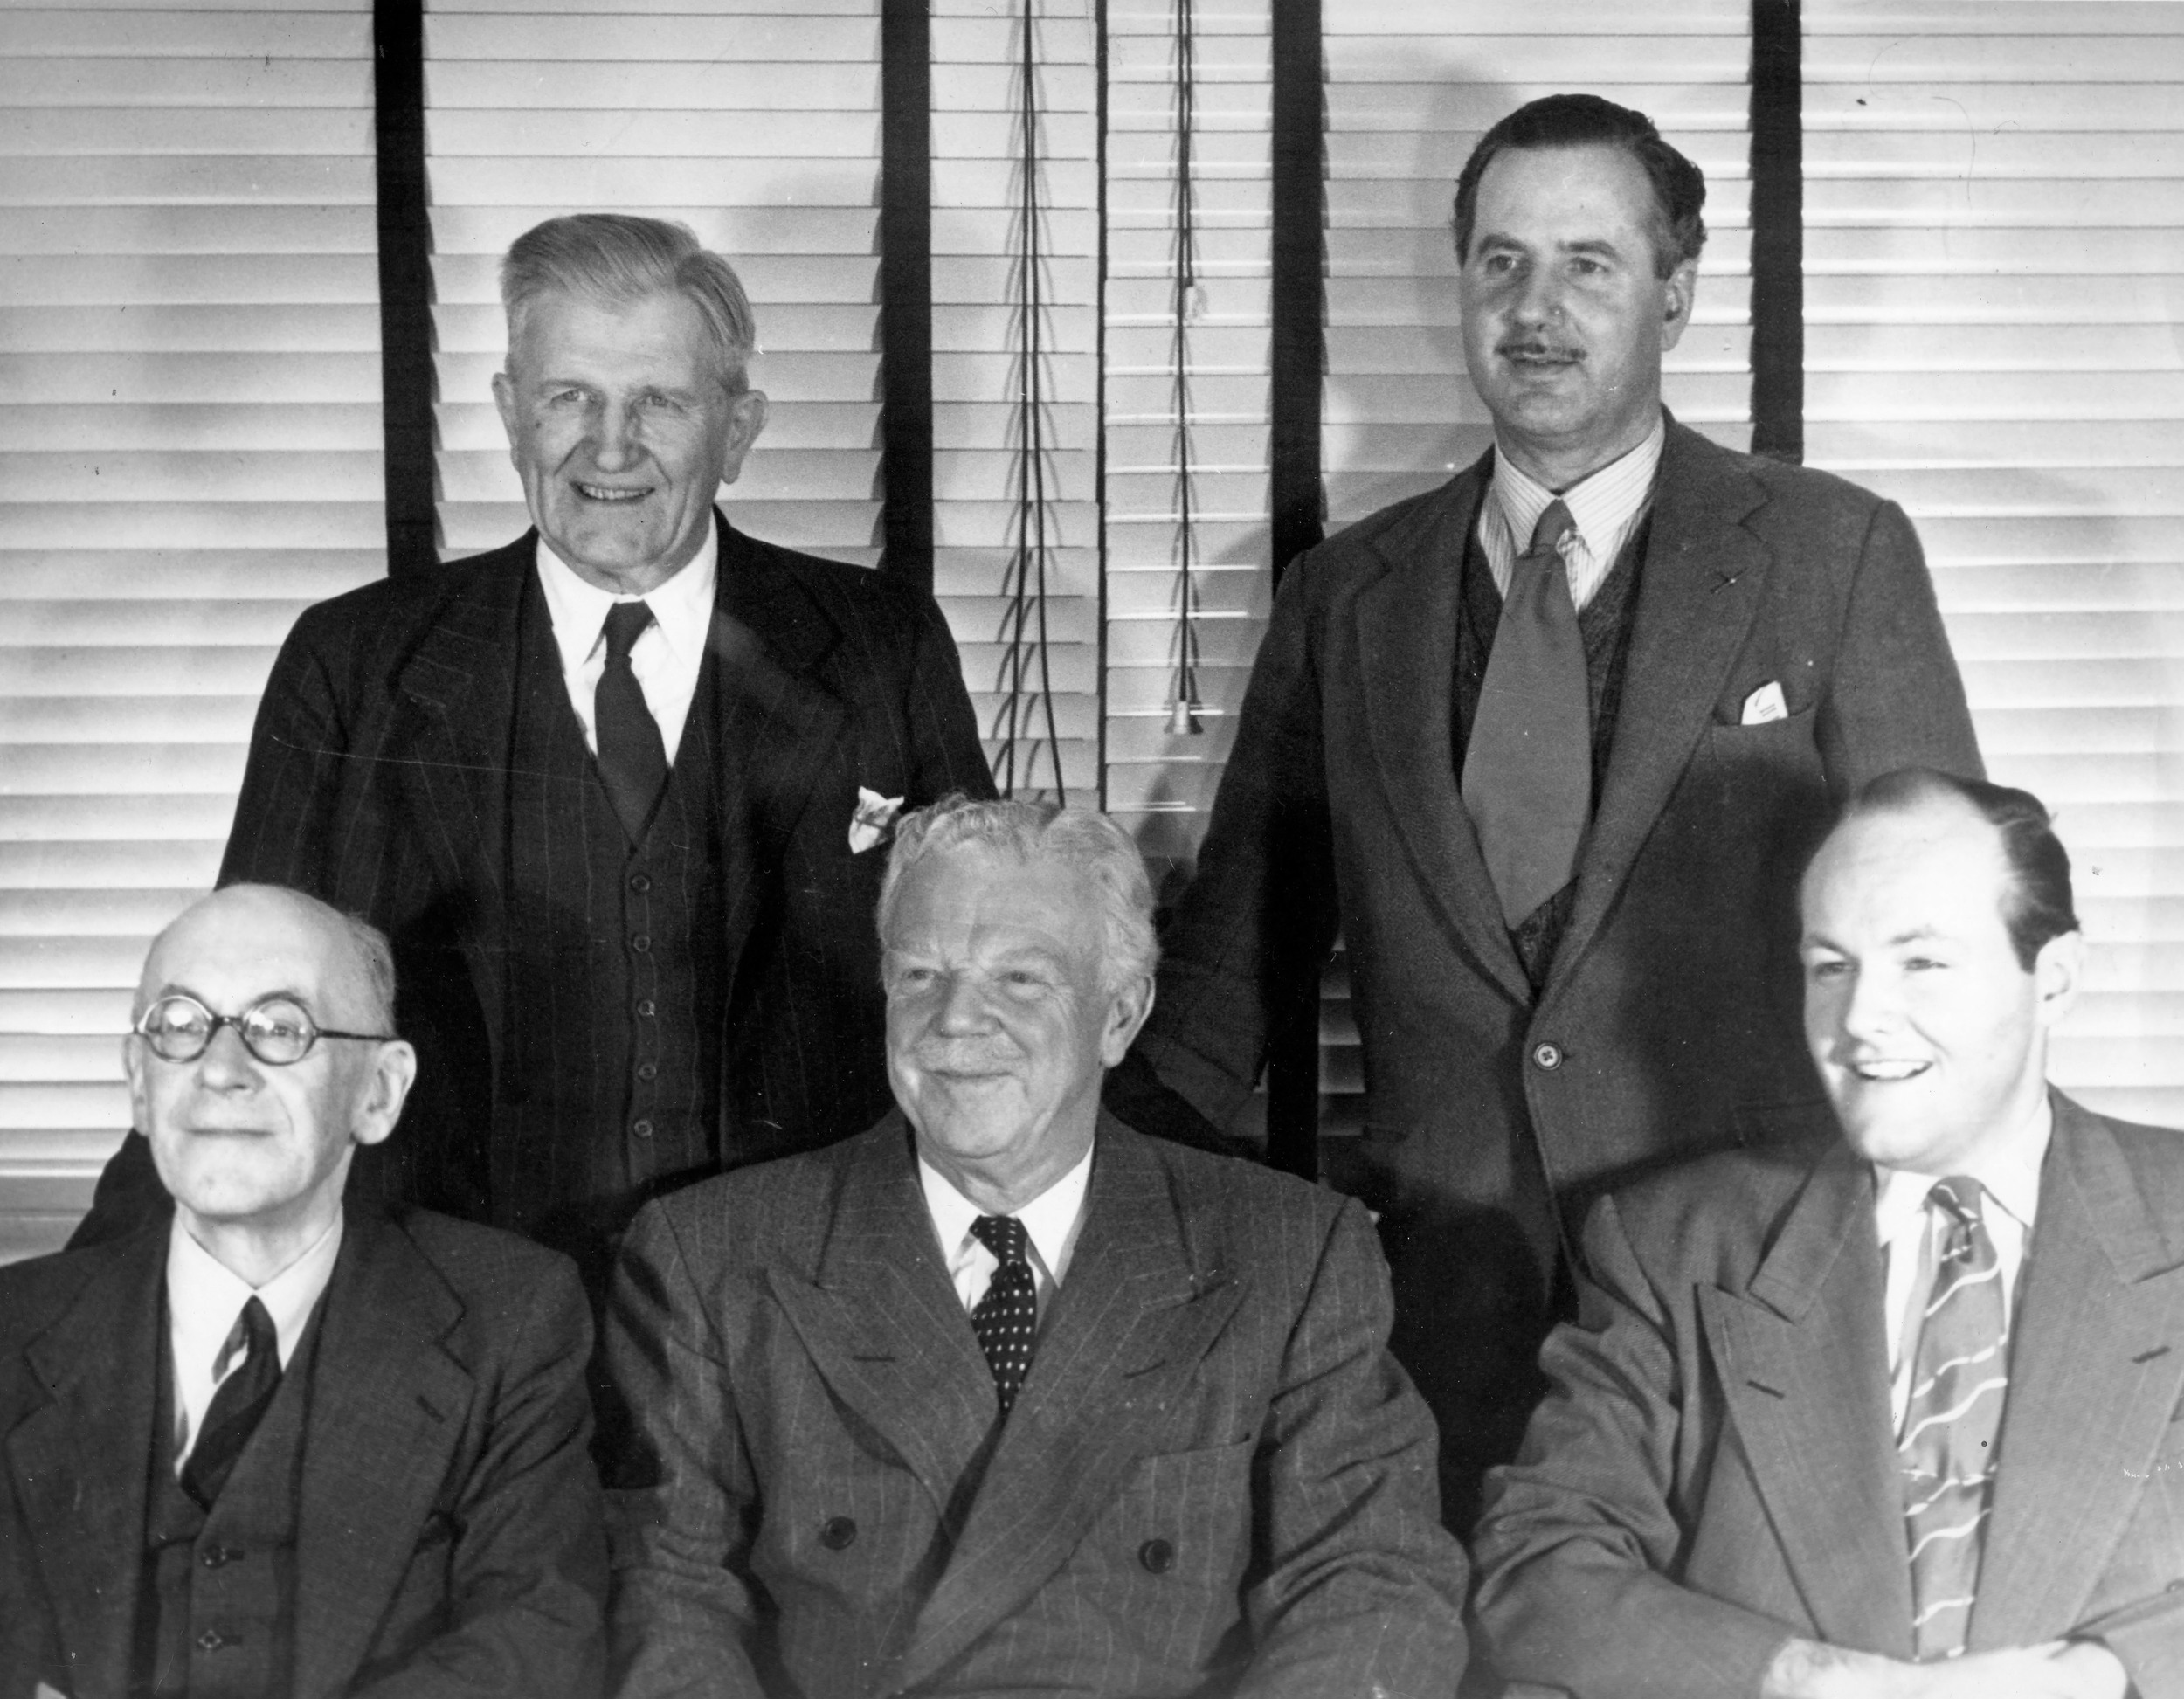 From left to right: Henry Willis III, William E. Zeuch, G. Donald Harrison, Aubrey Thompson-Allen, Joseph Whiteford in the office at the Aeolian-Skinner Company in 1950.